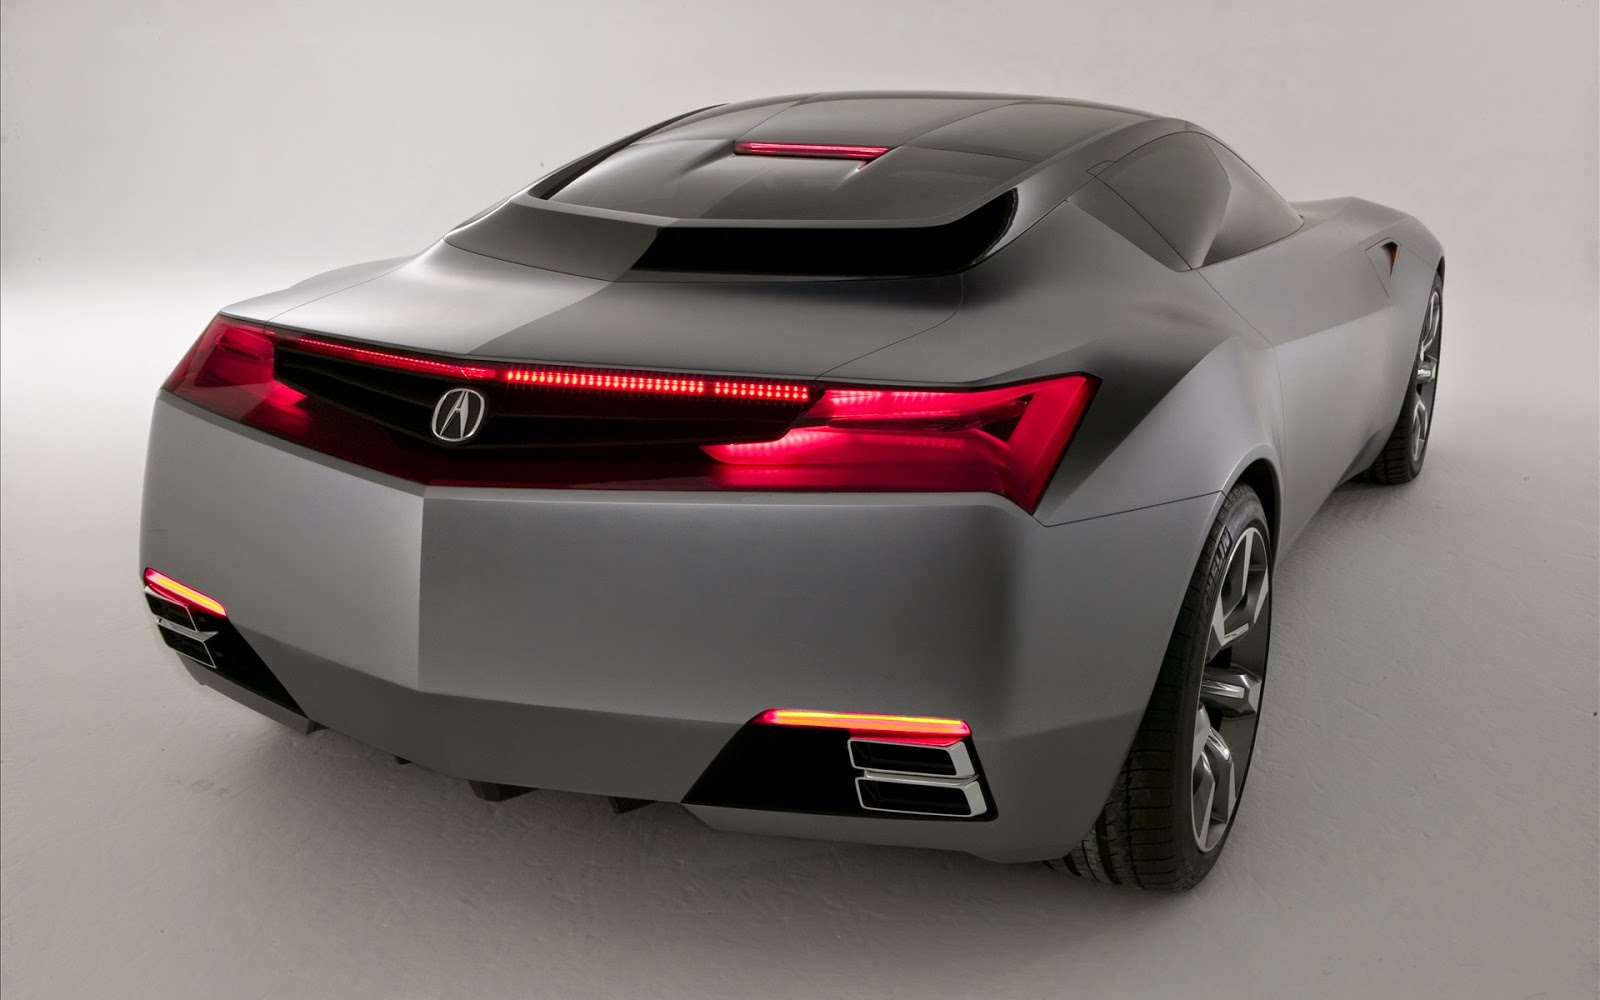 http://www.crazywallpapers.in/2014/07/acura-concept-car-best-wallpapers.html